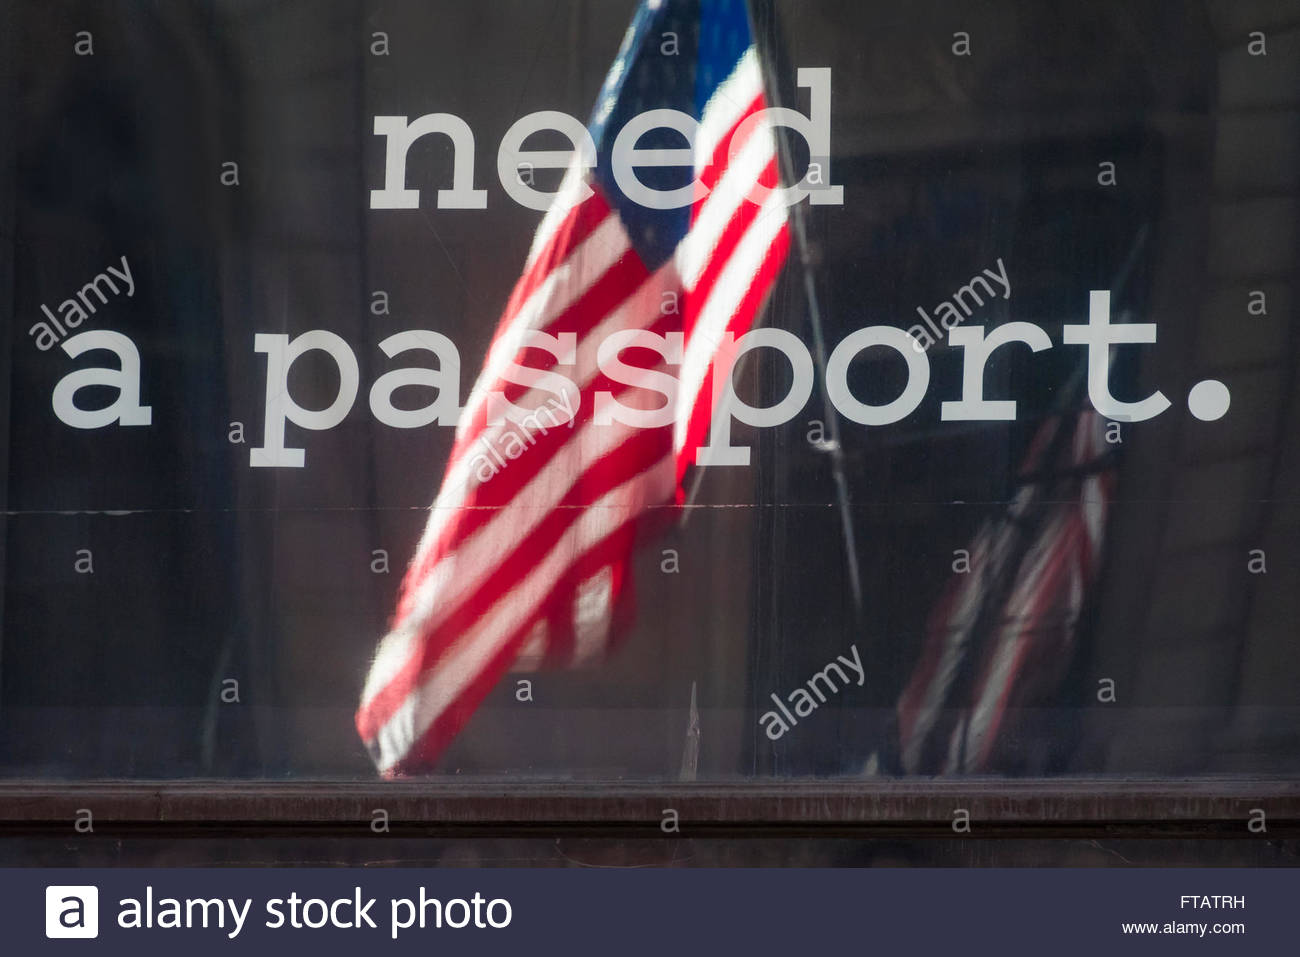 USA immigration issues: Need a passport sign with United States flag reflected on a glass window. - Stock Image